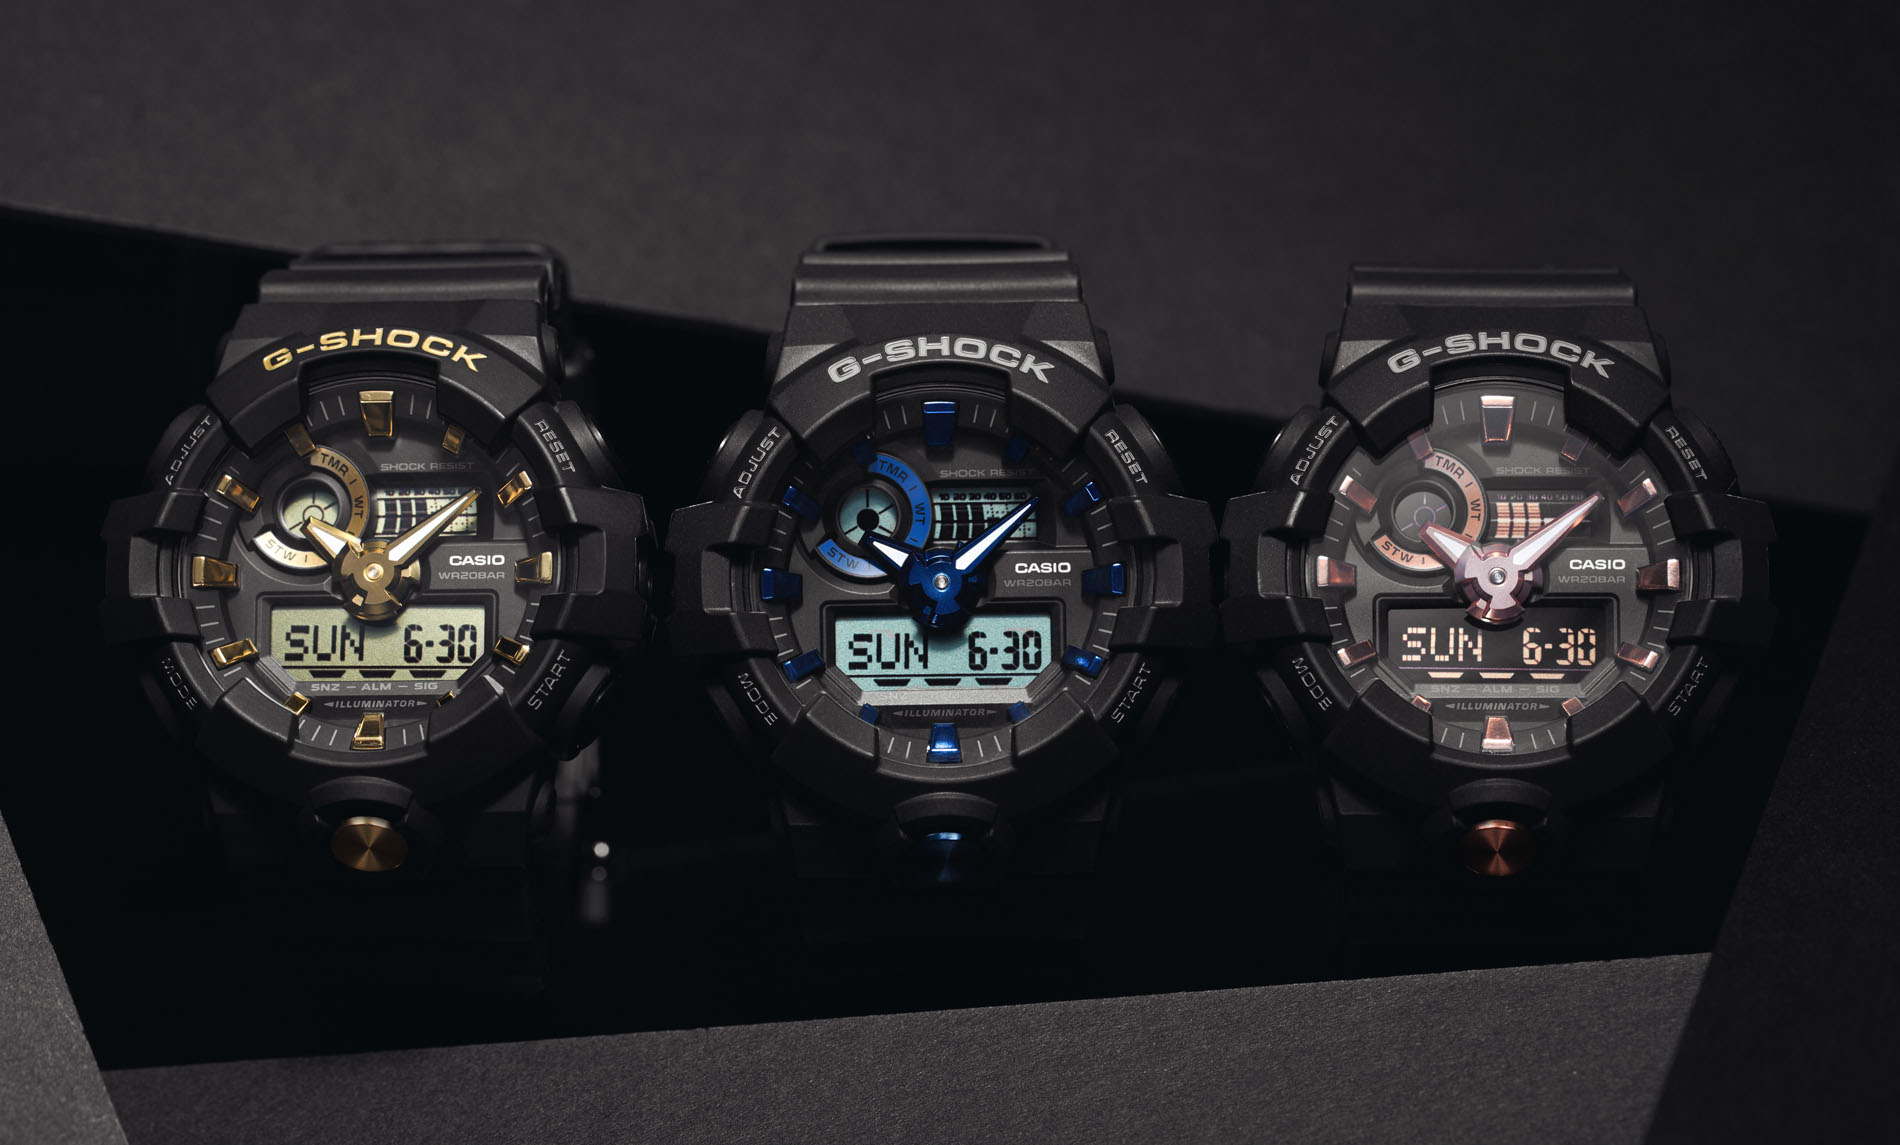 2cb46efbf194 G-SHOCK - Men s - Tough Shock-Resistant and Water Resistant Analog ...